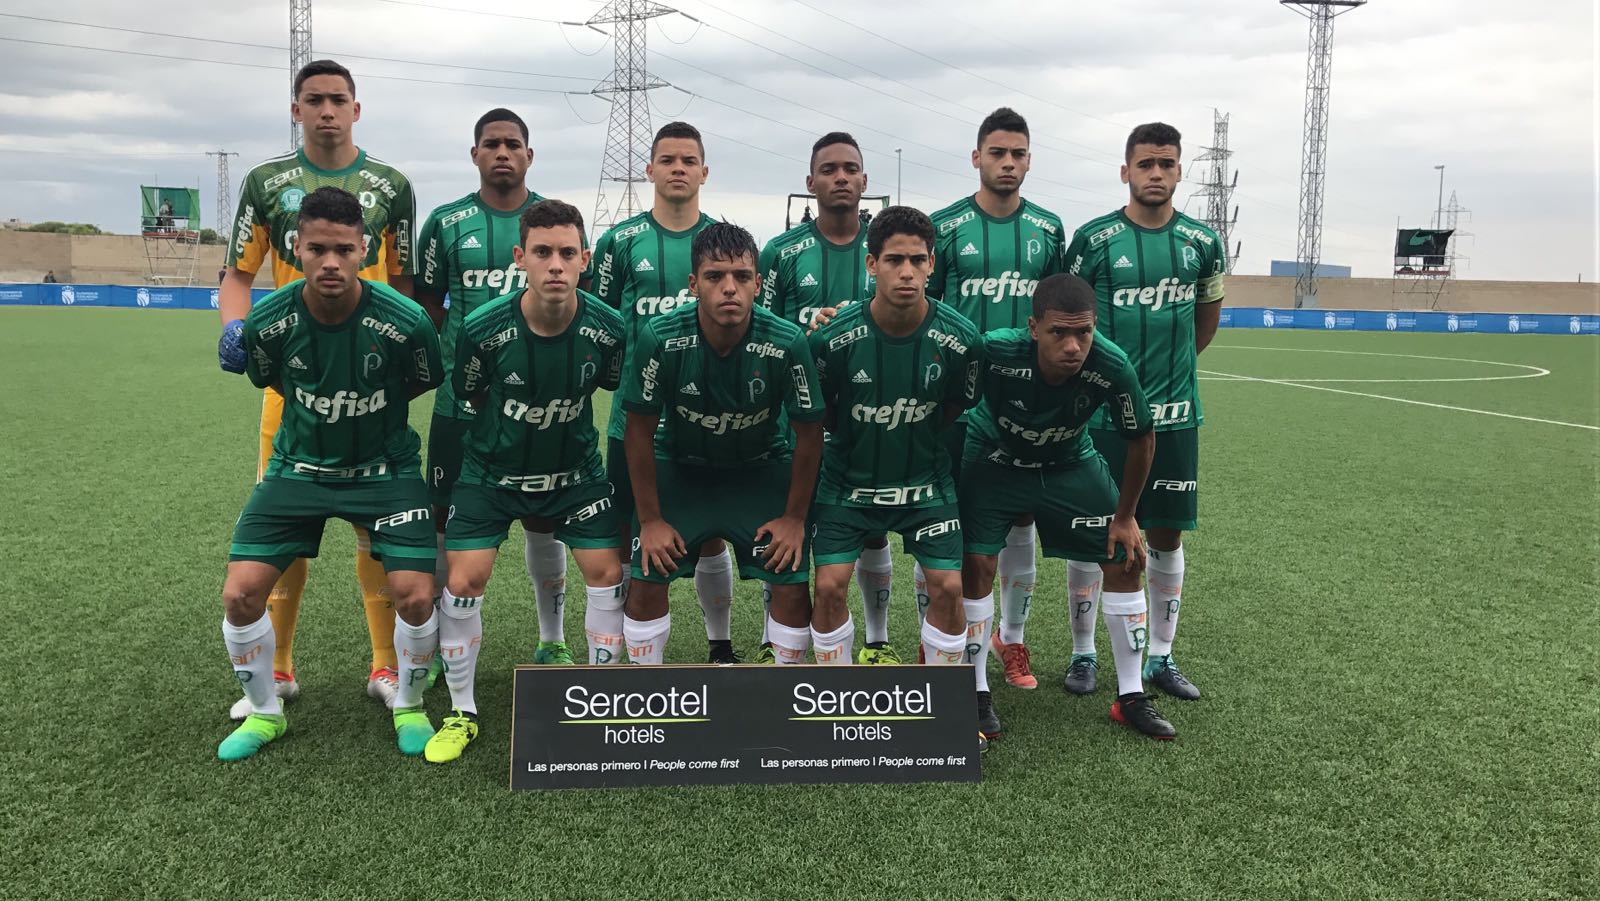 Real Madrid Sub-17